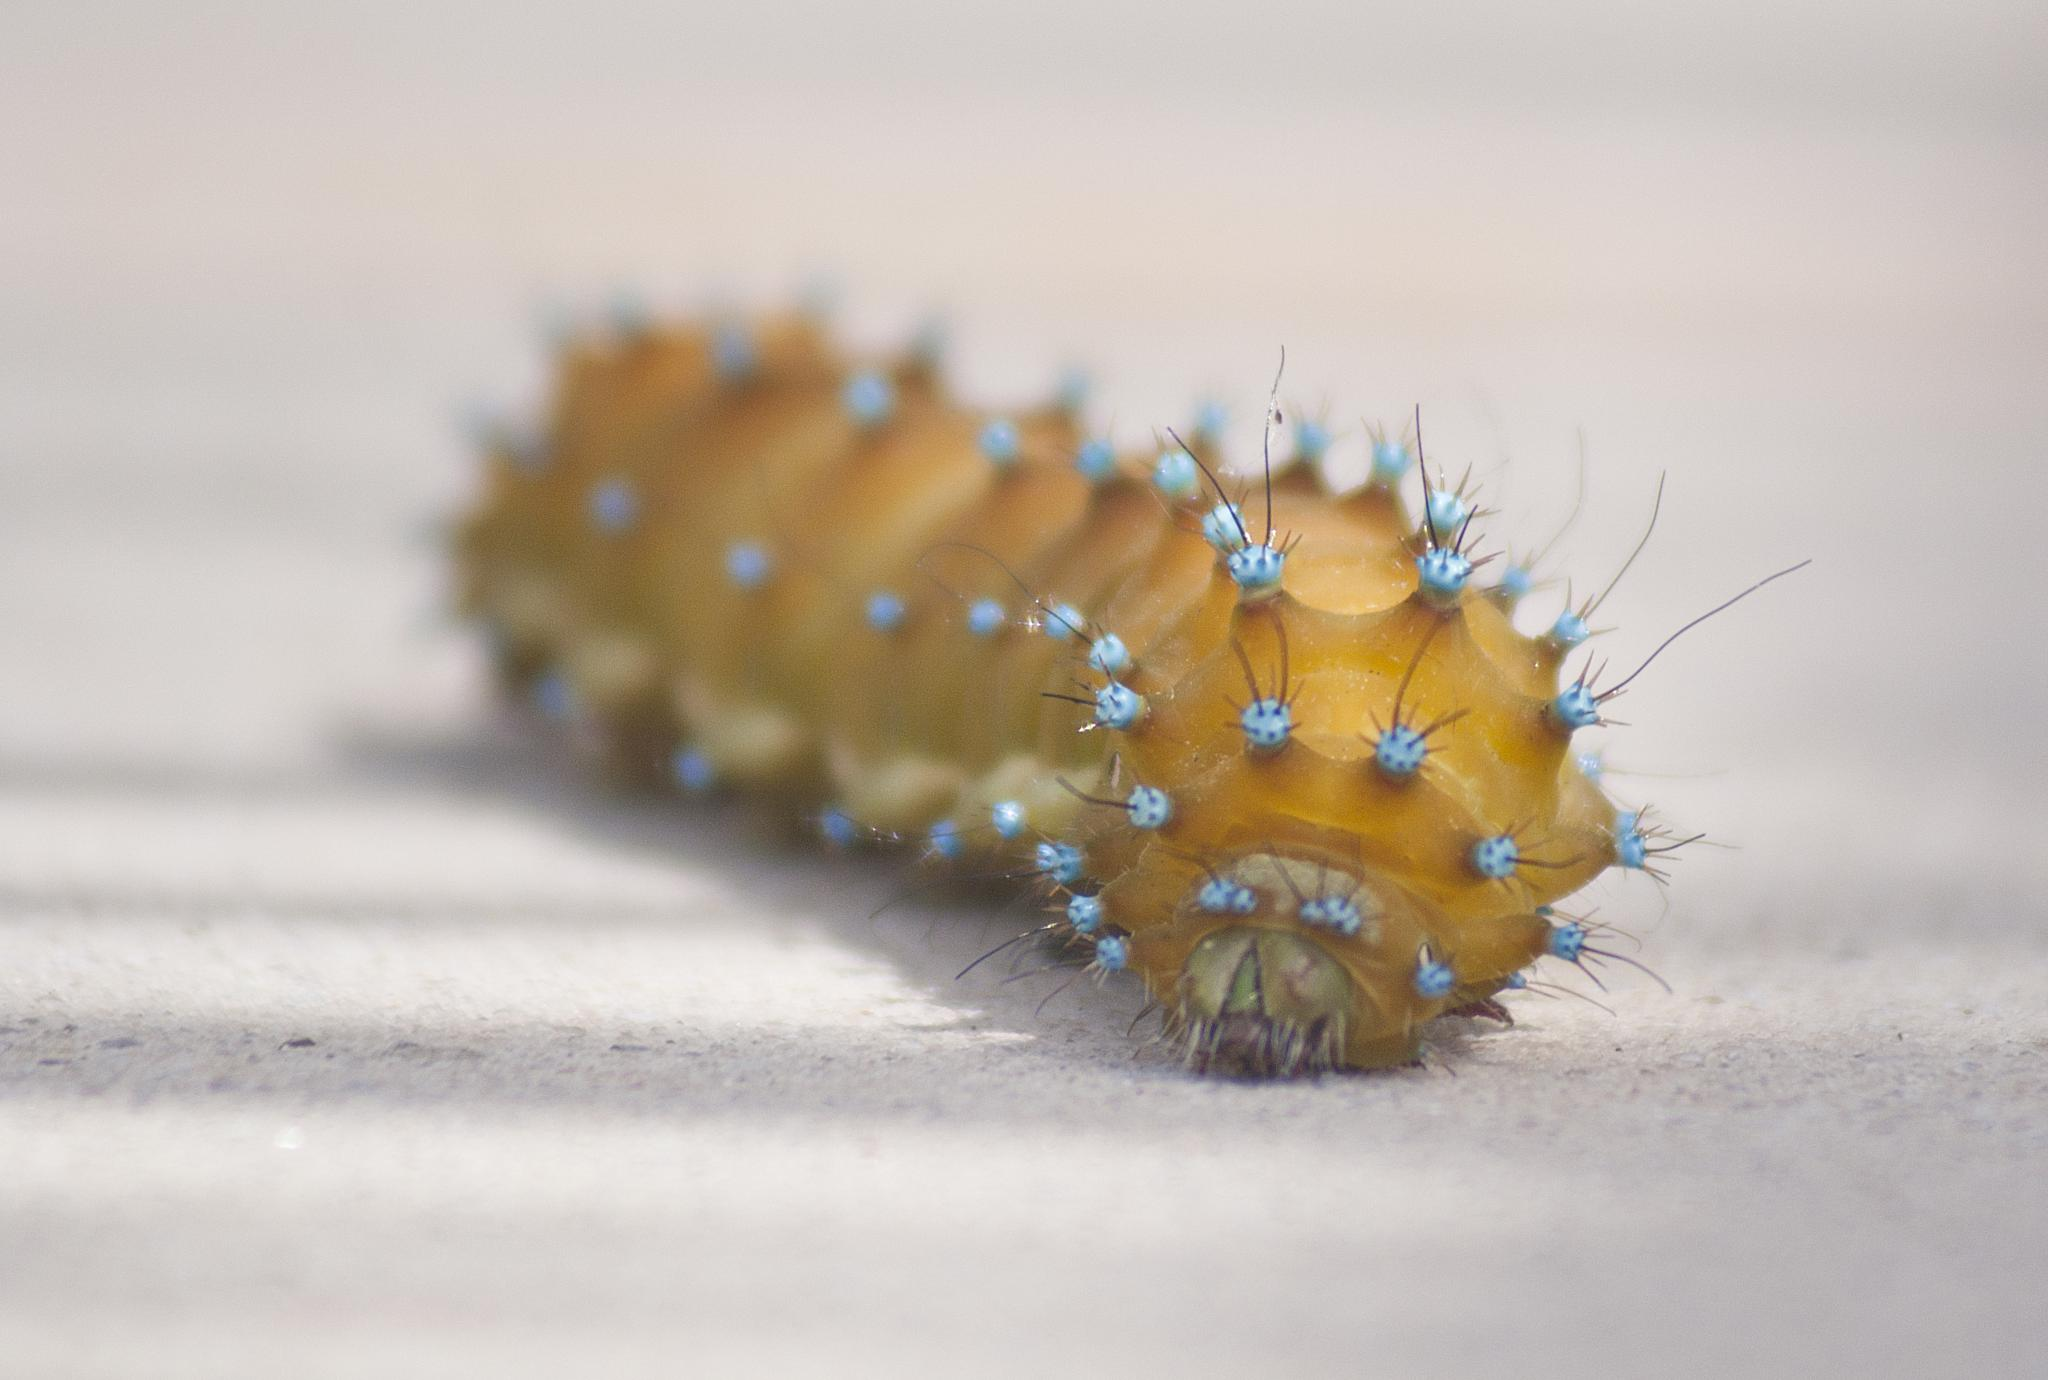 Giant Peacock Moth caterpillar by Tom Didden